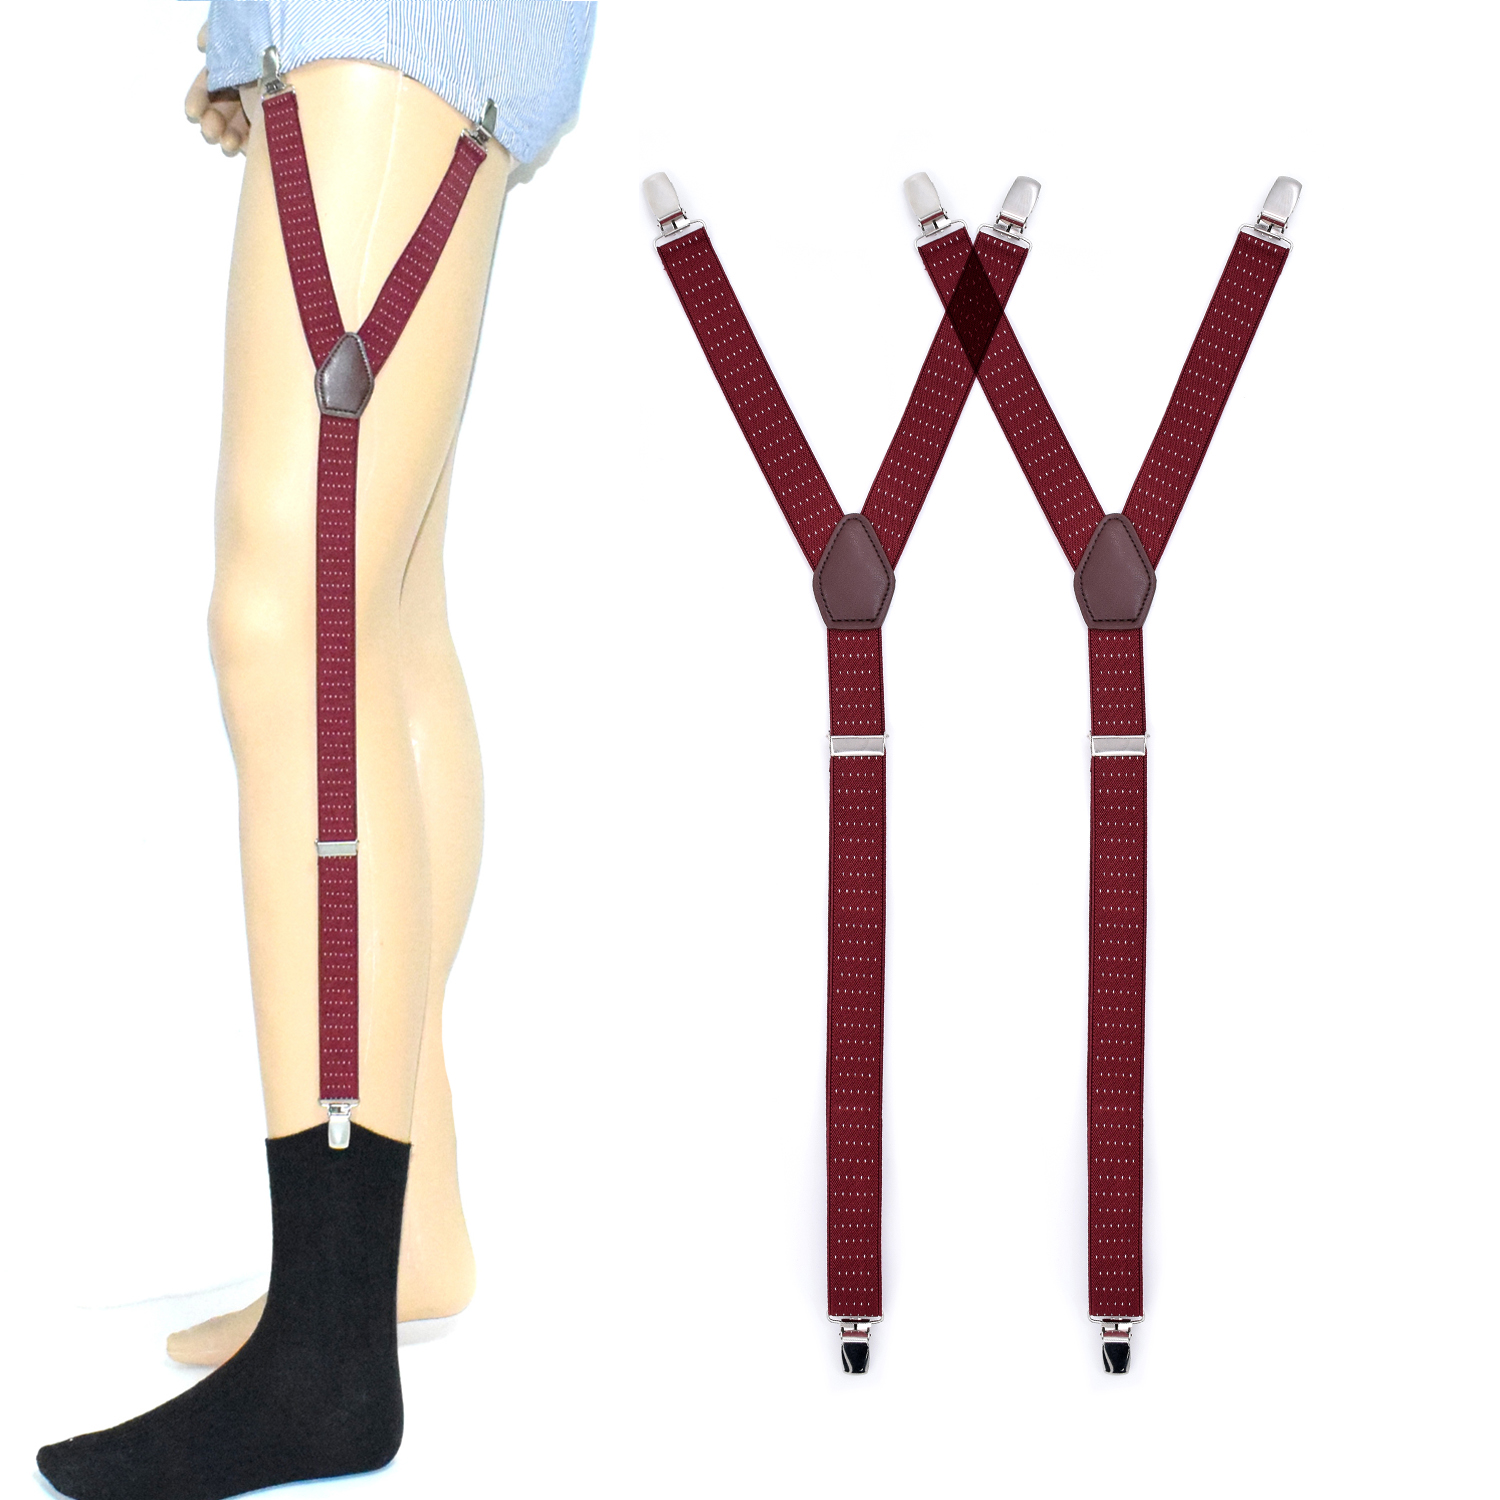 Mens Shirt Stays Y Style Adjustable Shirt Holders Sock Garters Leg Suspenders Straps For Men Police Military Burgundy Color